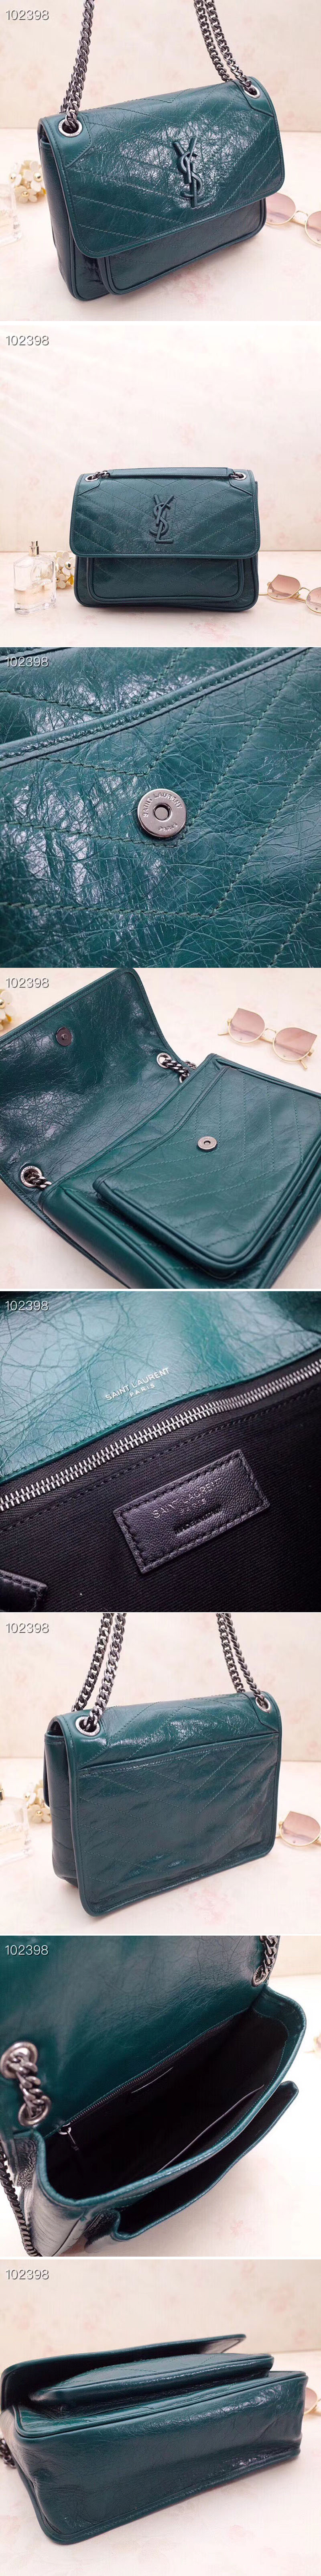 Replica YSL Saint Laurent Niki Medium Bag Vintage Leather 498894 Green